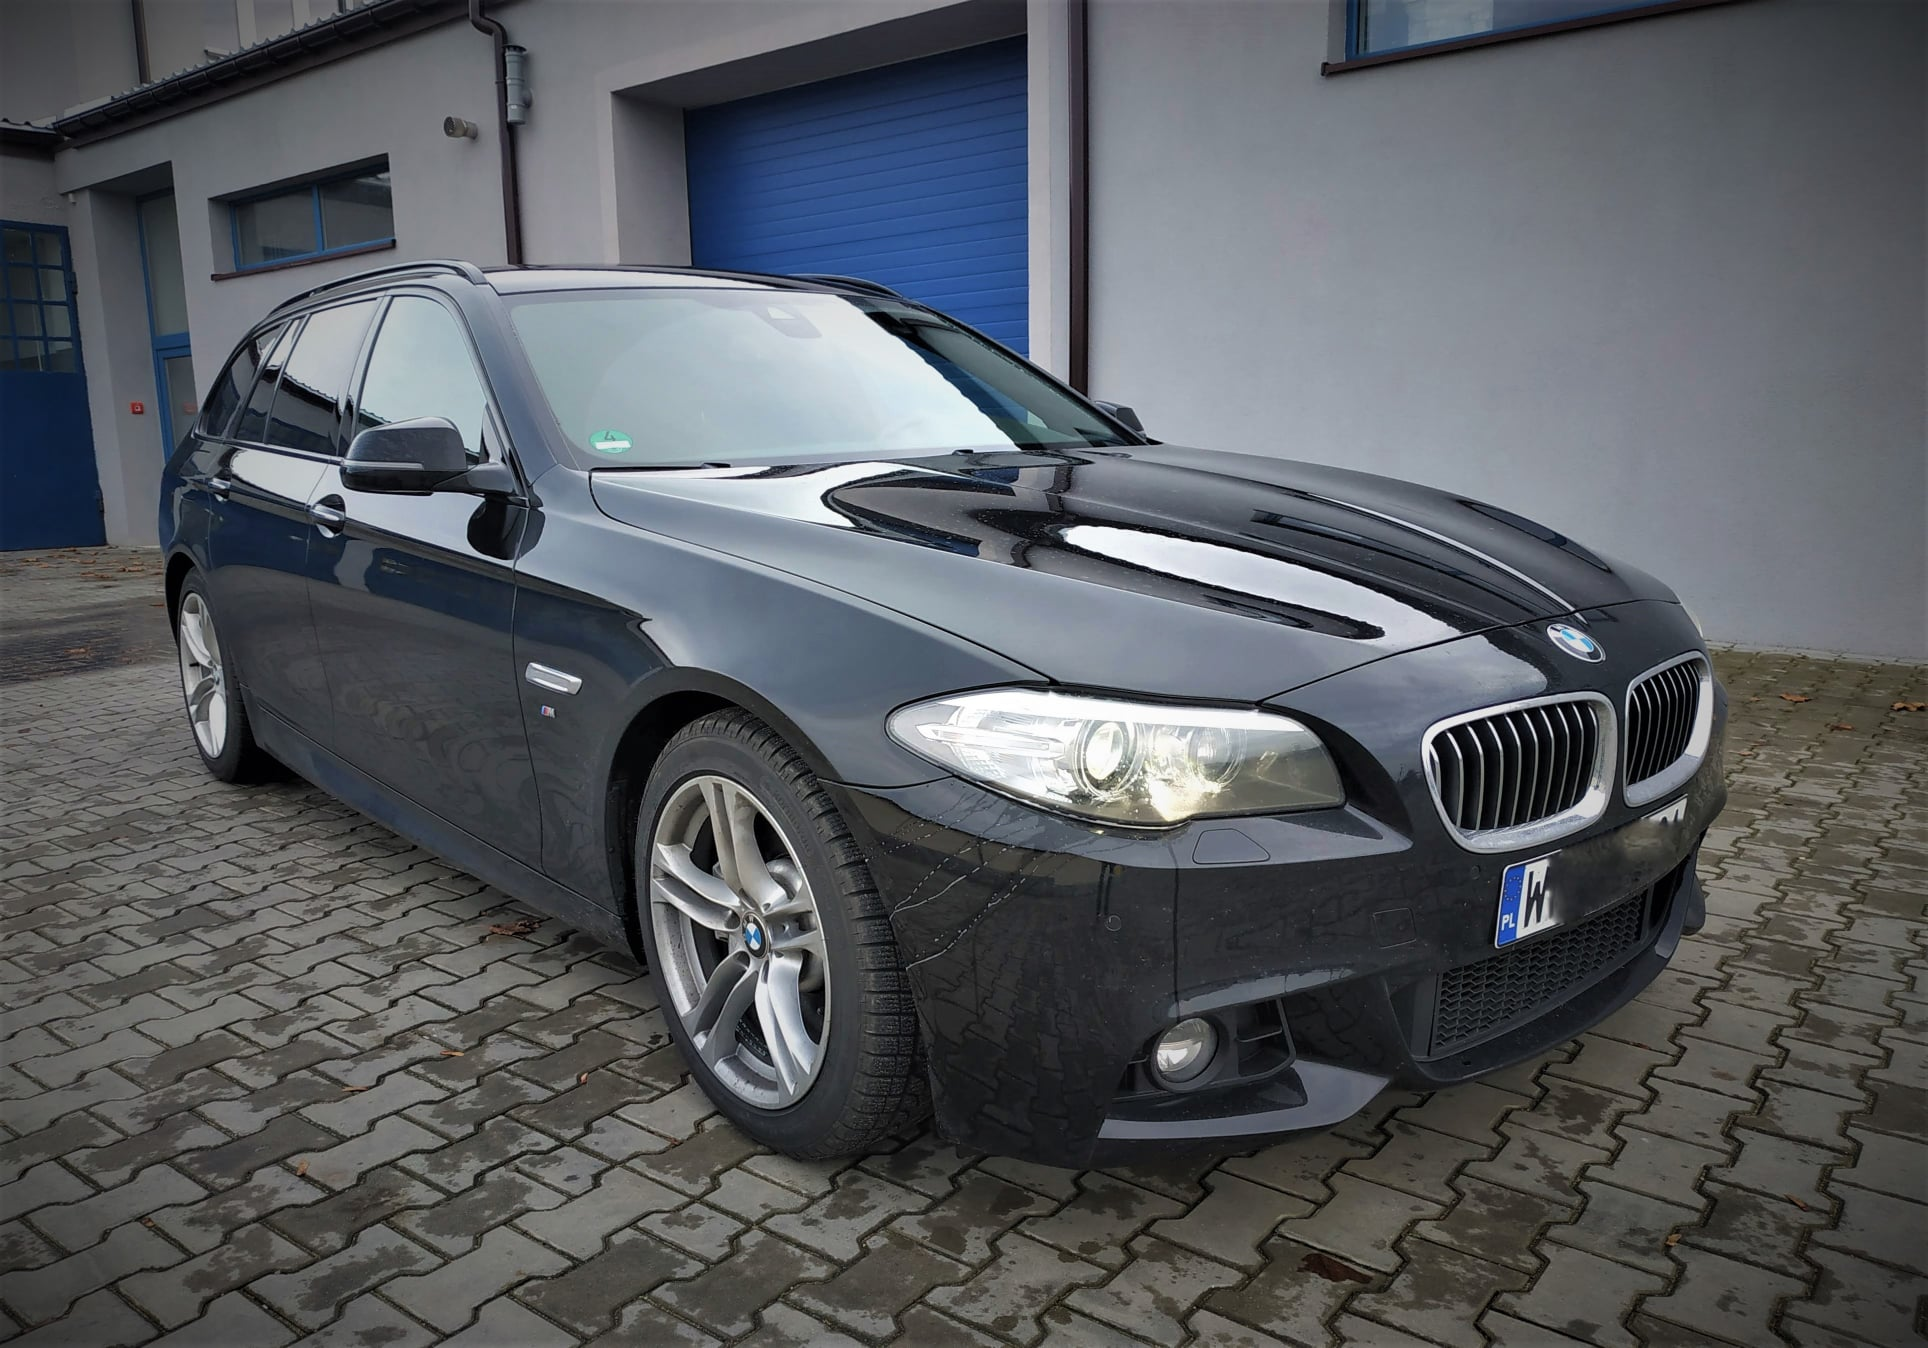 BMW F11 2013 525d 218KM >> 267KM 513Nm